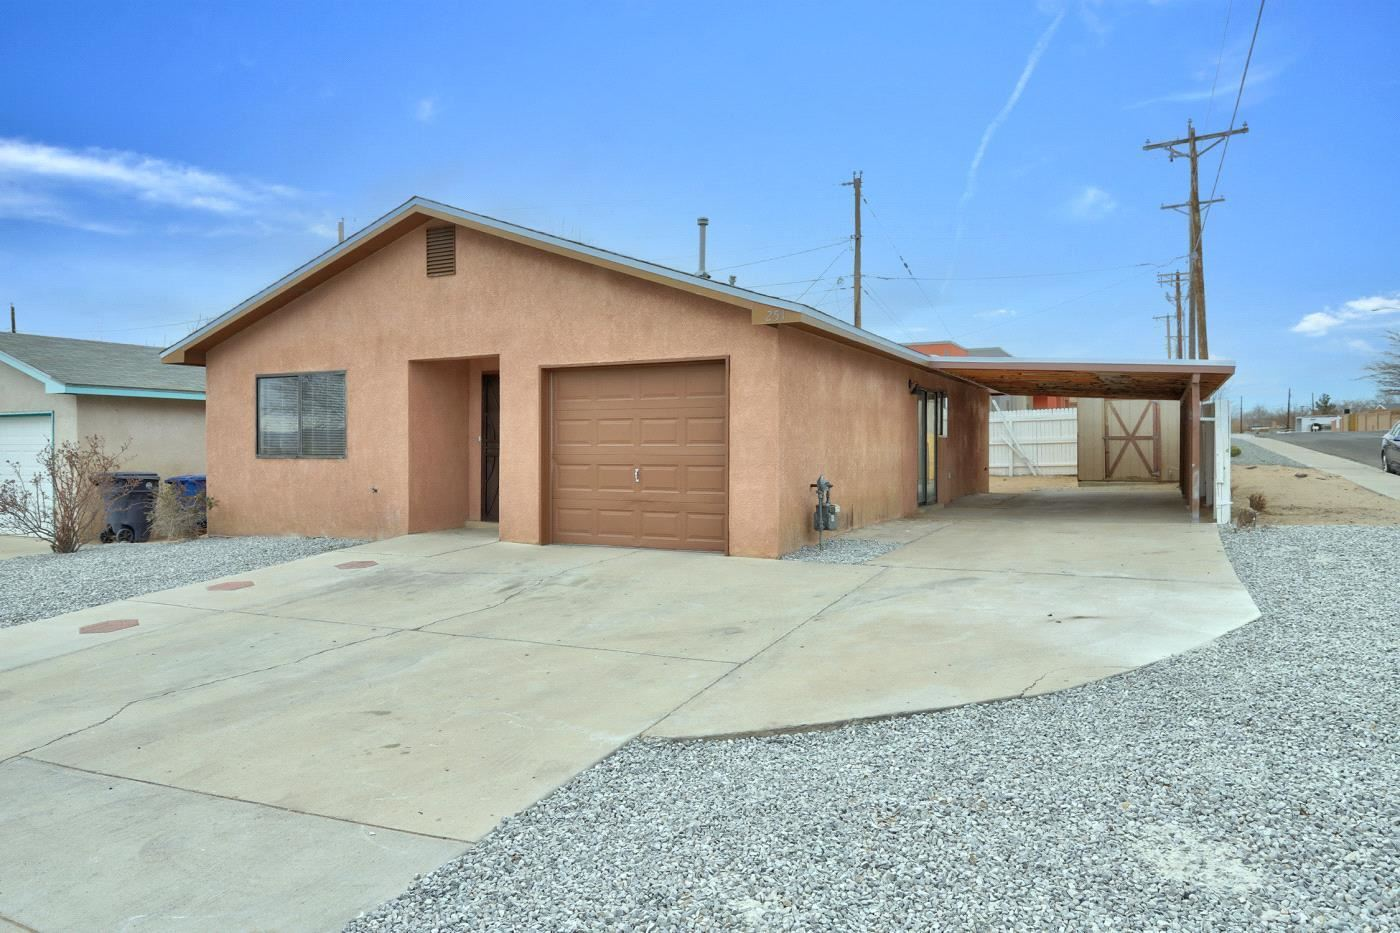 251 57TH Street NW, Albuquerque, NM 87105 - MLS#: 985710